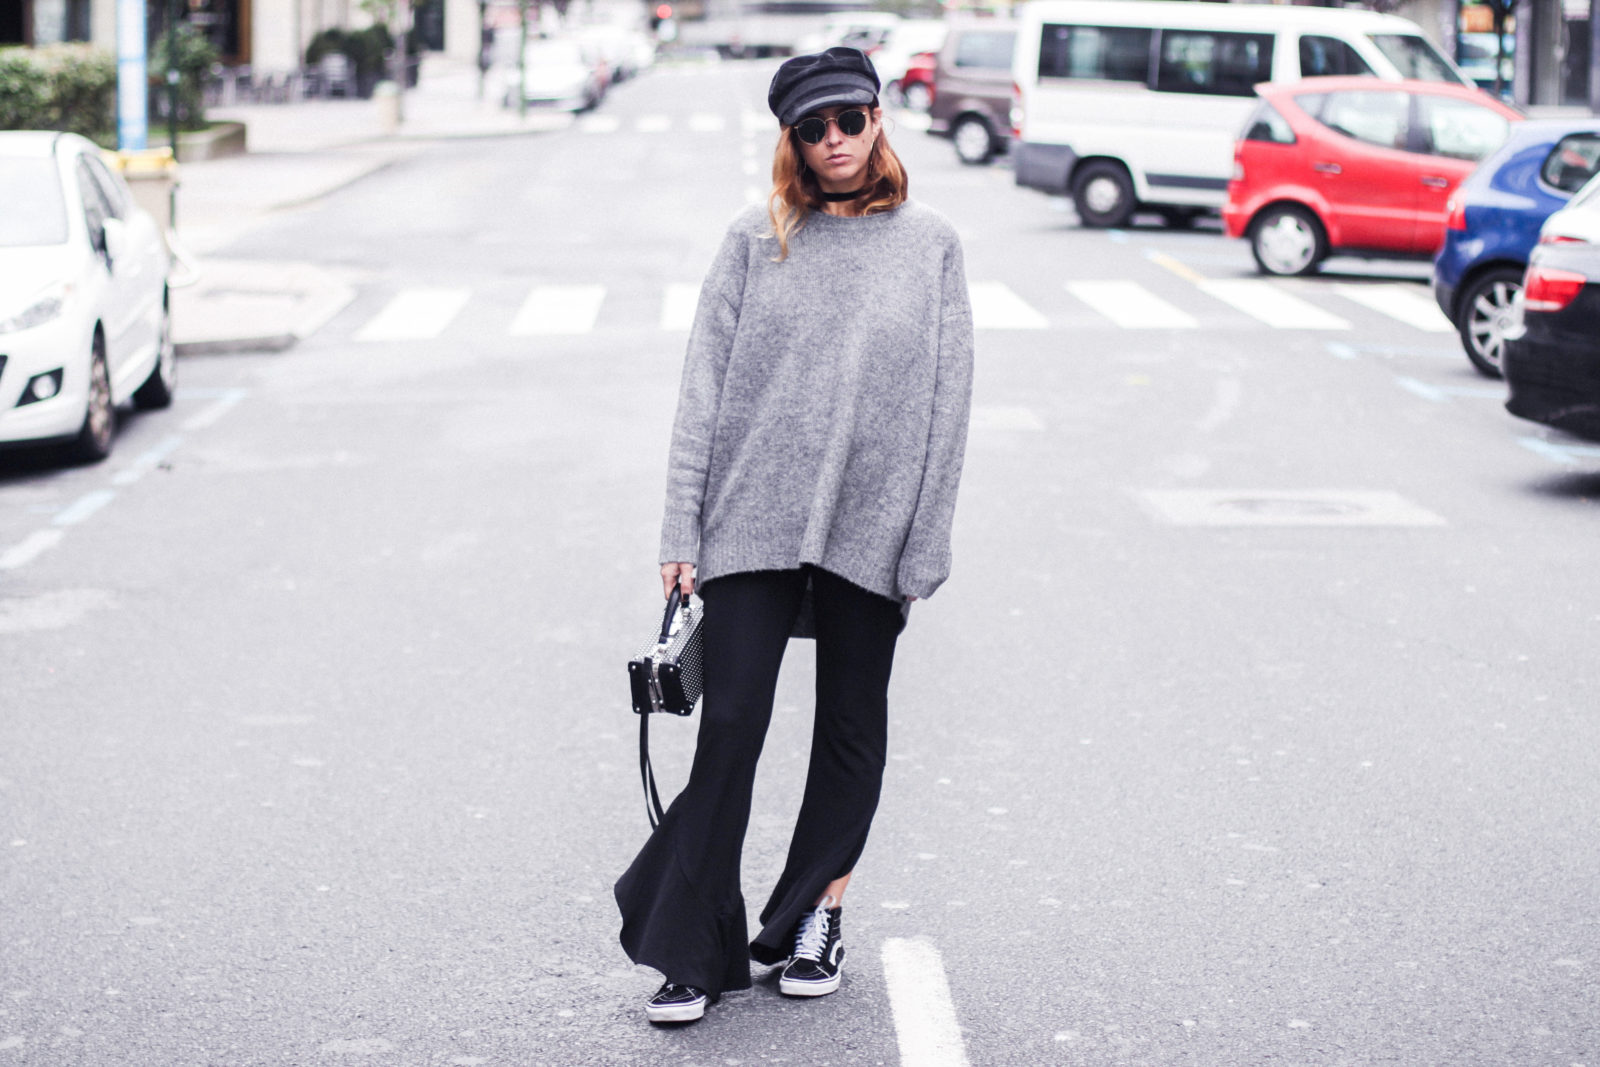 baker_boy_hat_flared_pants_vans_oversize_knit_fall_2016_trends_street_style_outfits_donkeycool-14